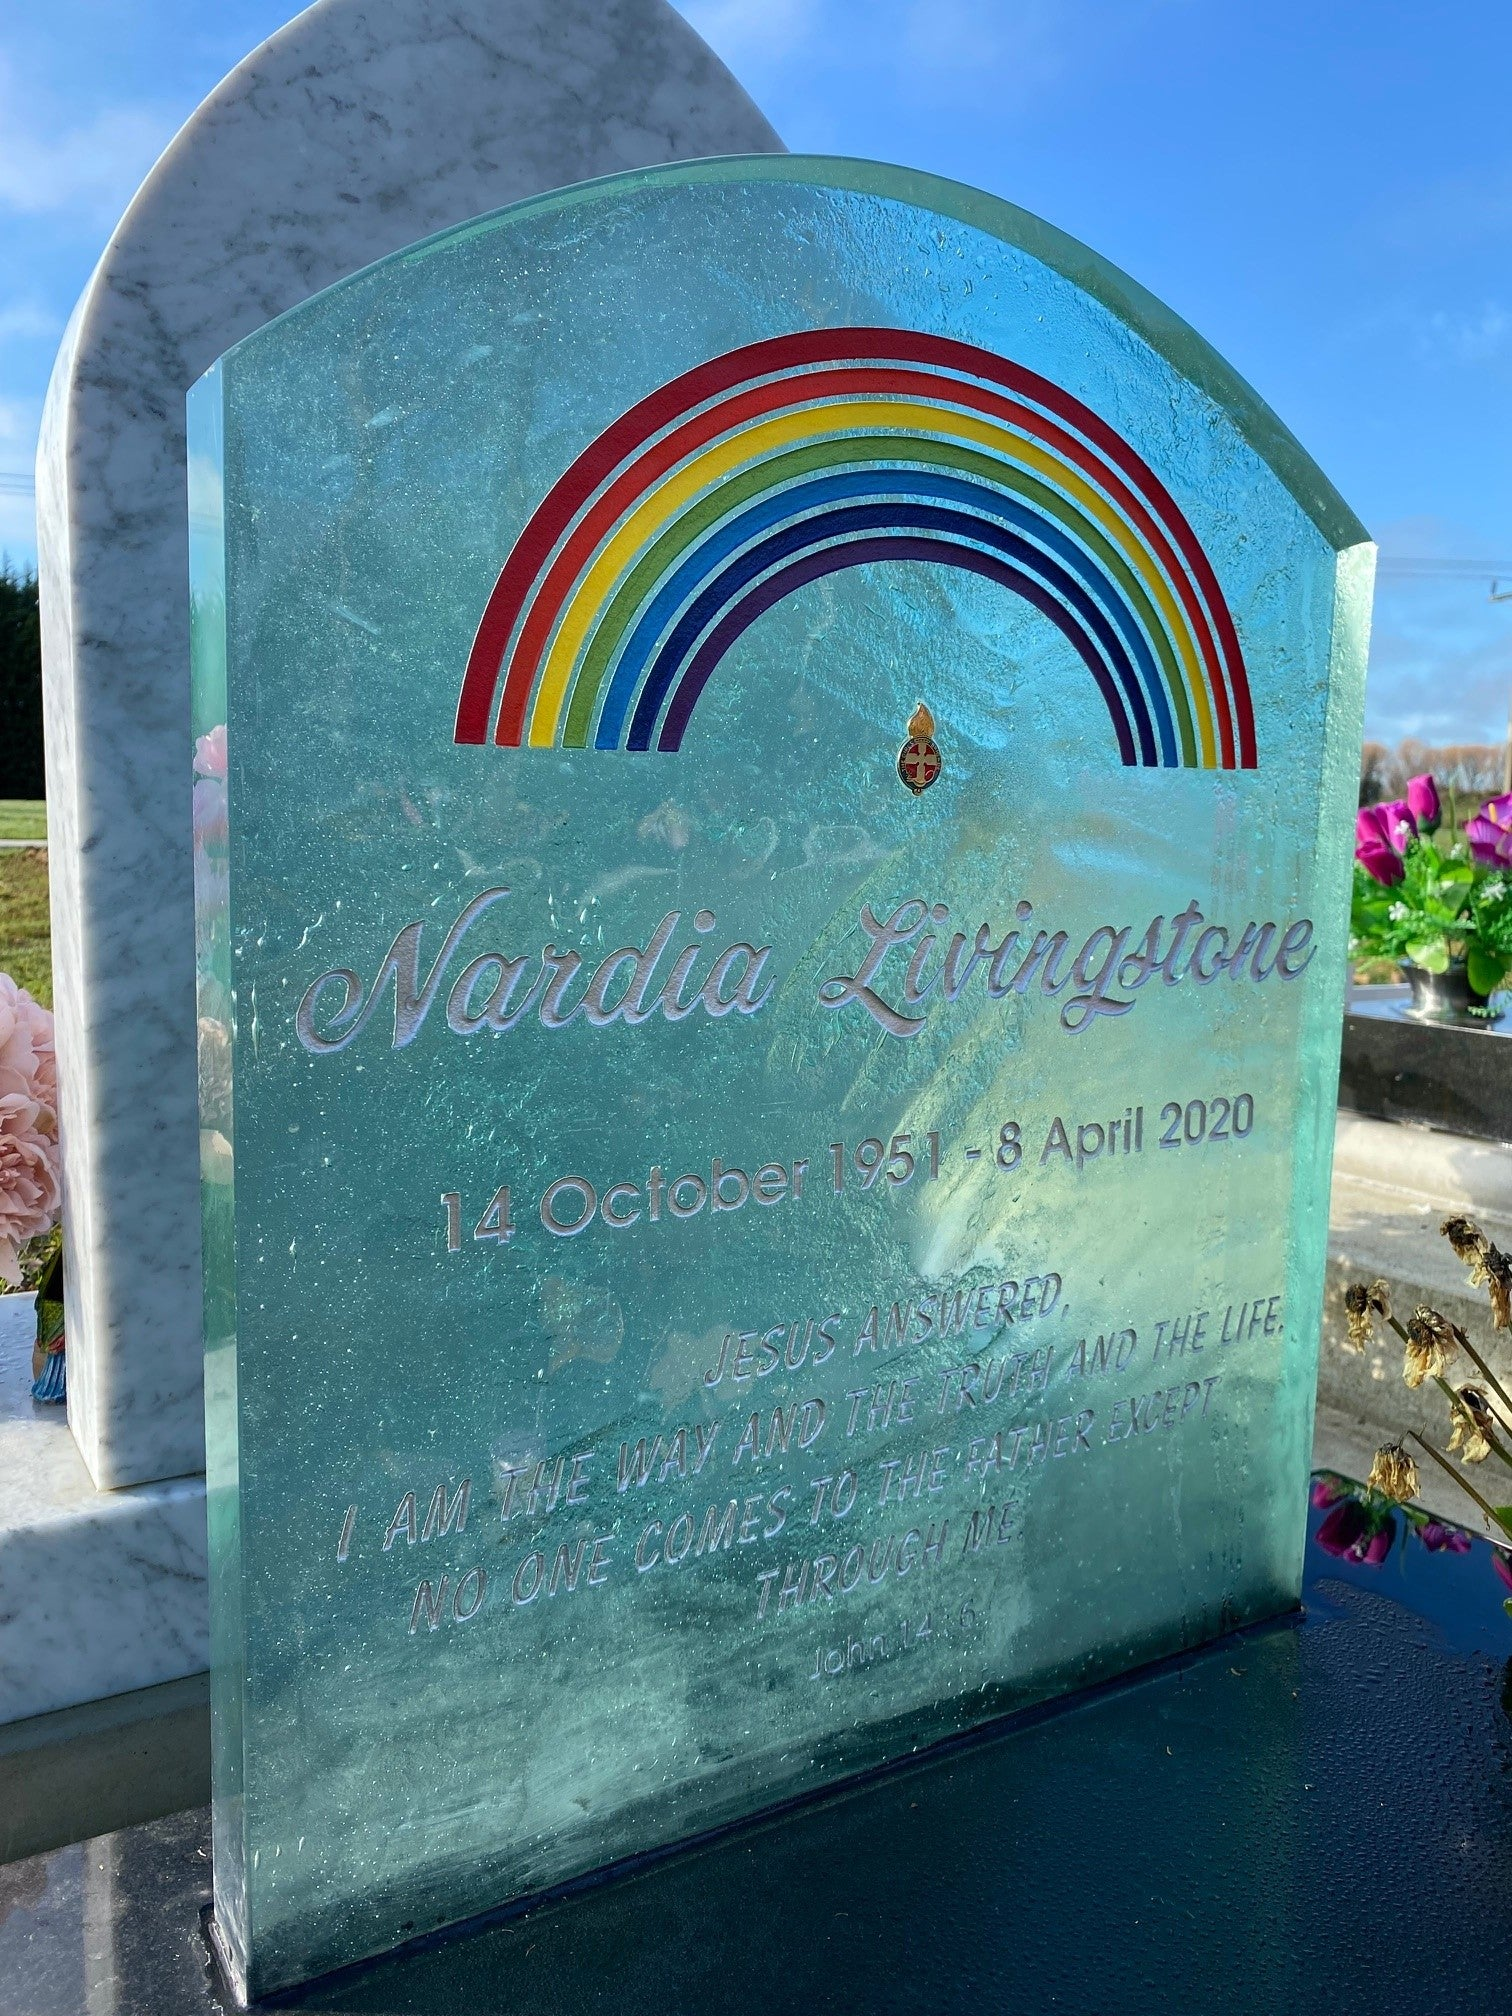 Slumped glass headstones - patterned textured glass headstones made in new zealand - granite base